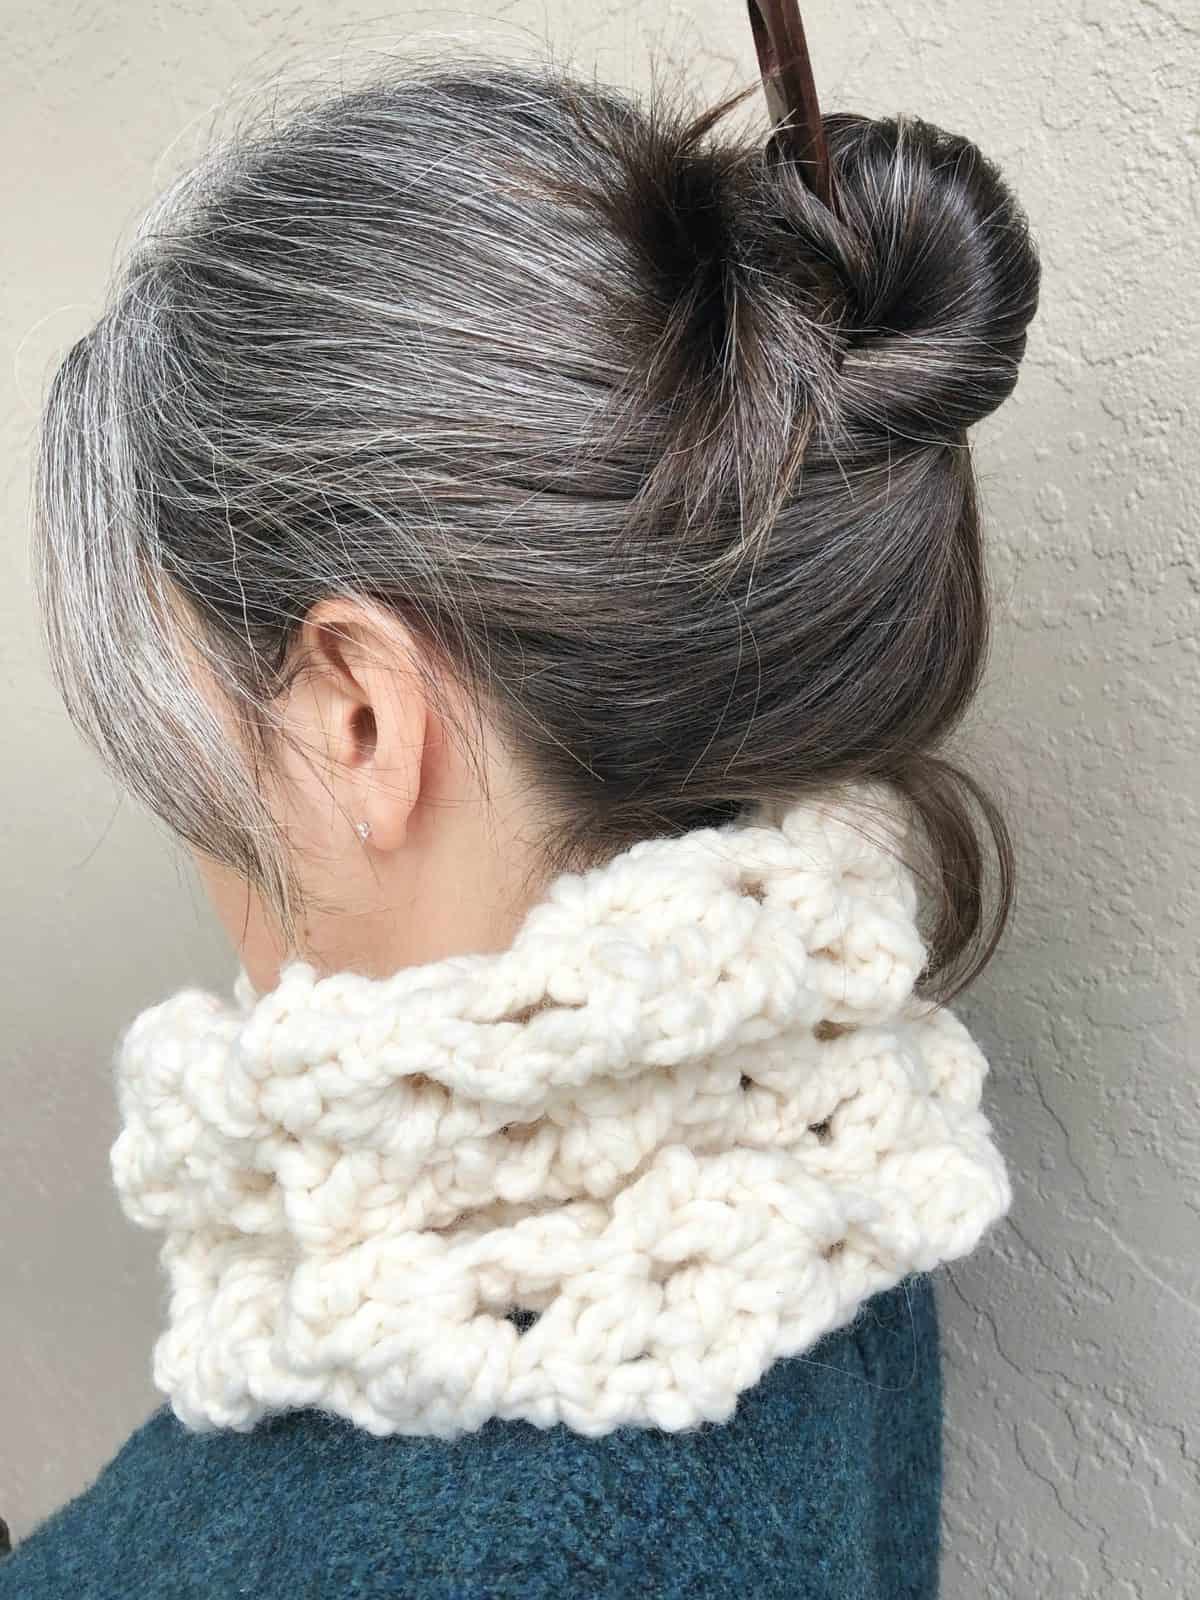 picture of woman turned away with chunky cream colored cowl around neck